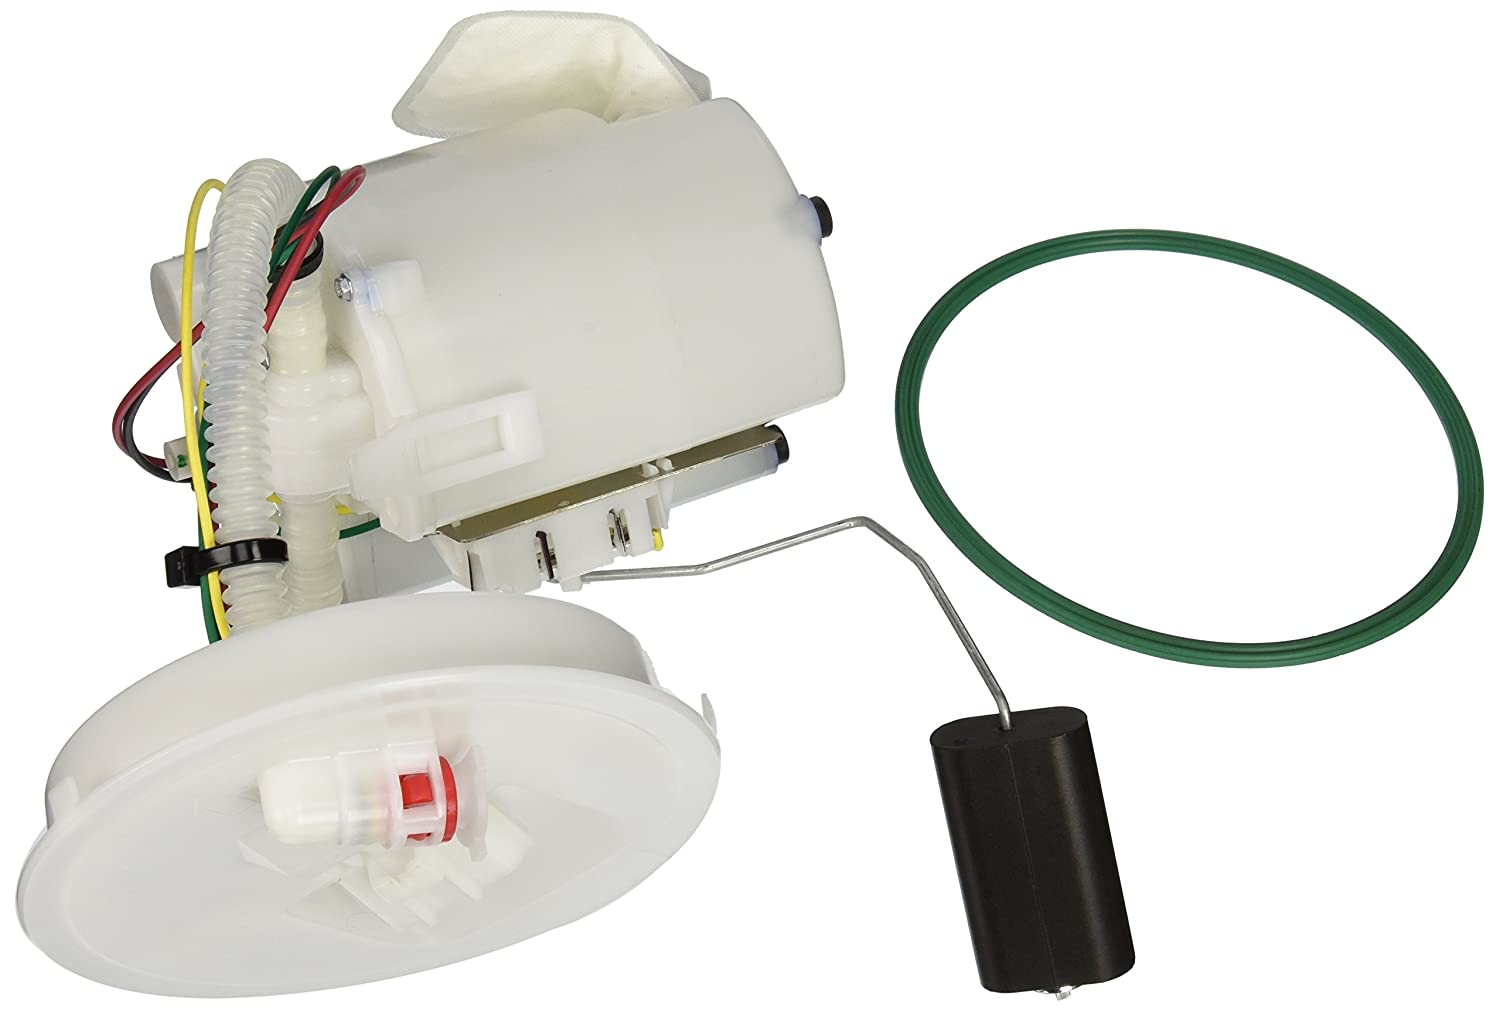 Motorcraft Pfs204 Fuel Pump And Hanger With Sender Replace Filter 2004 Ford Mustang Automotive